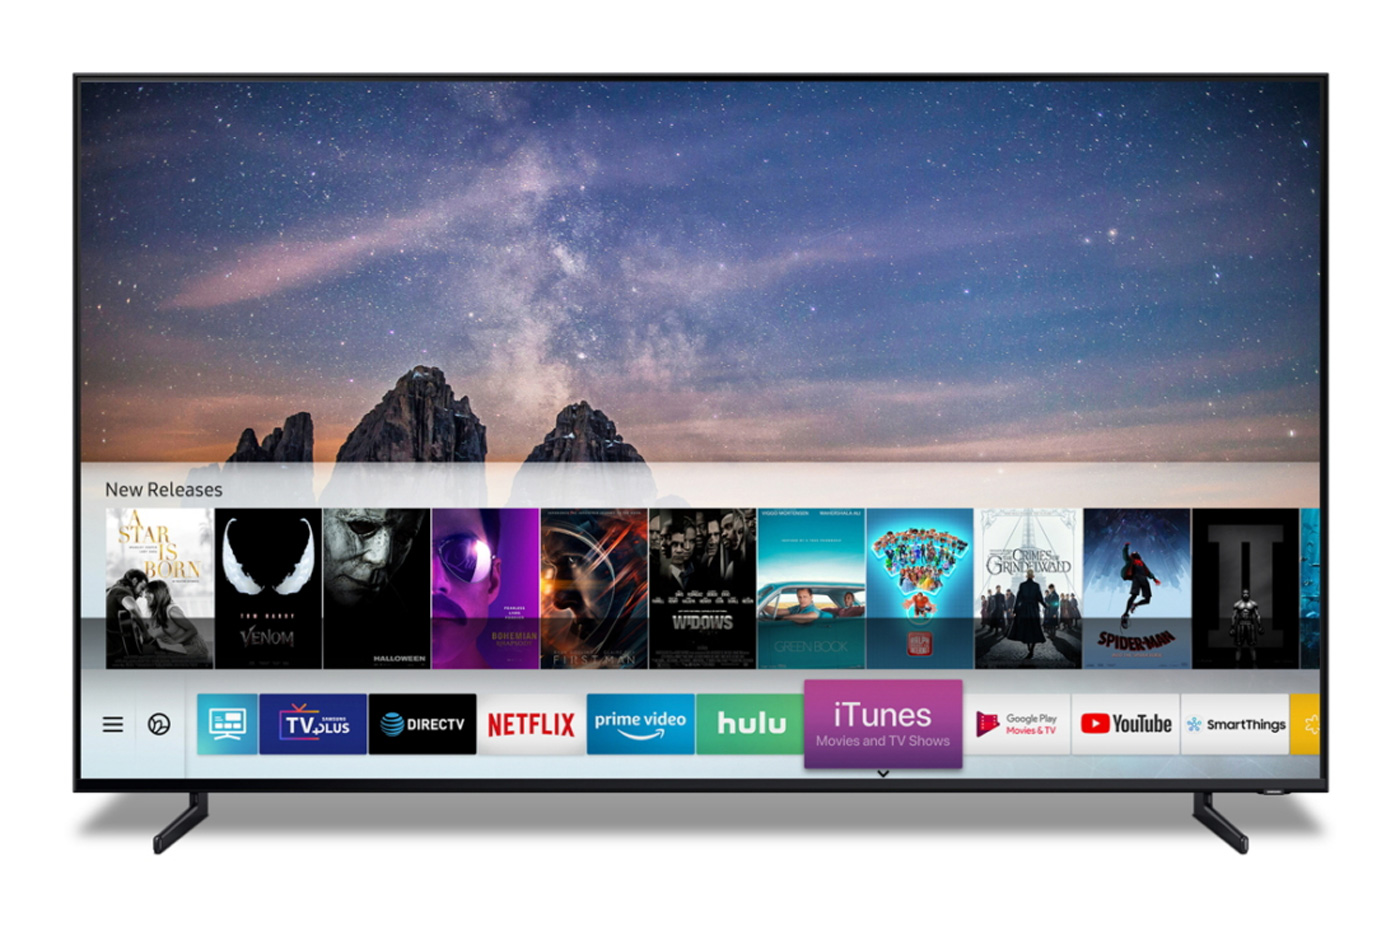 iTunes-Smart-TV-Samsung